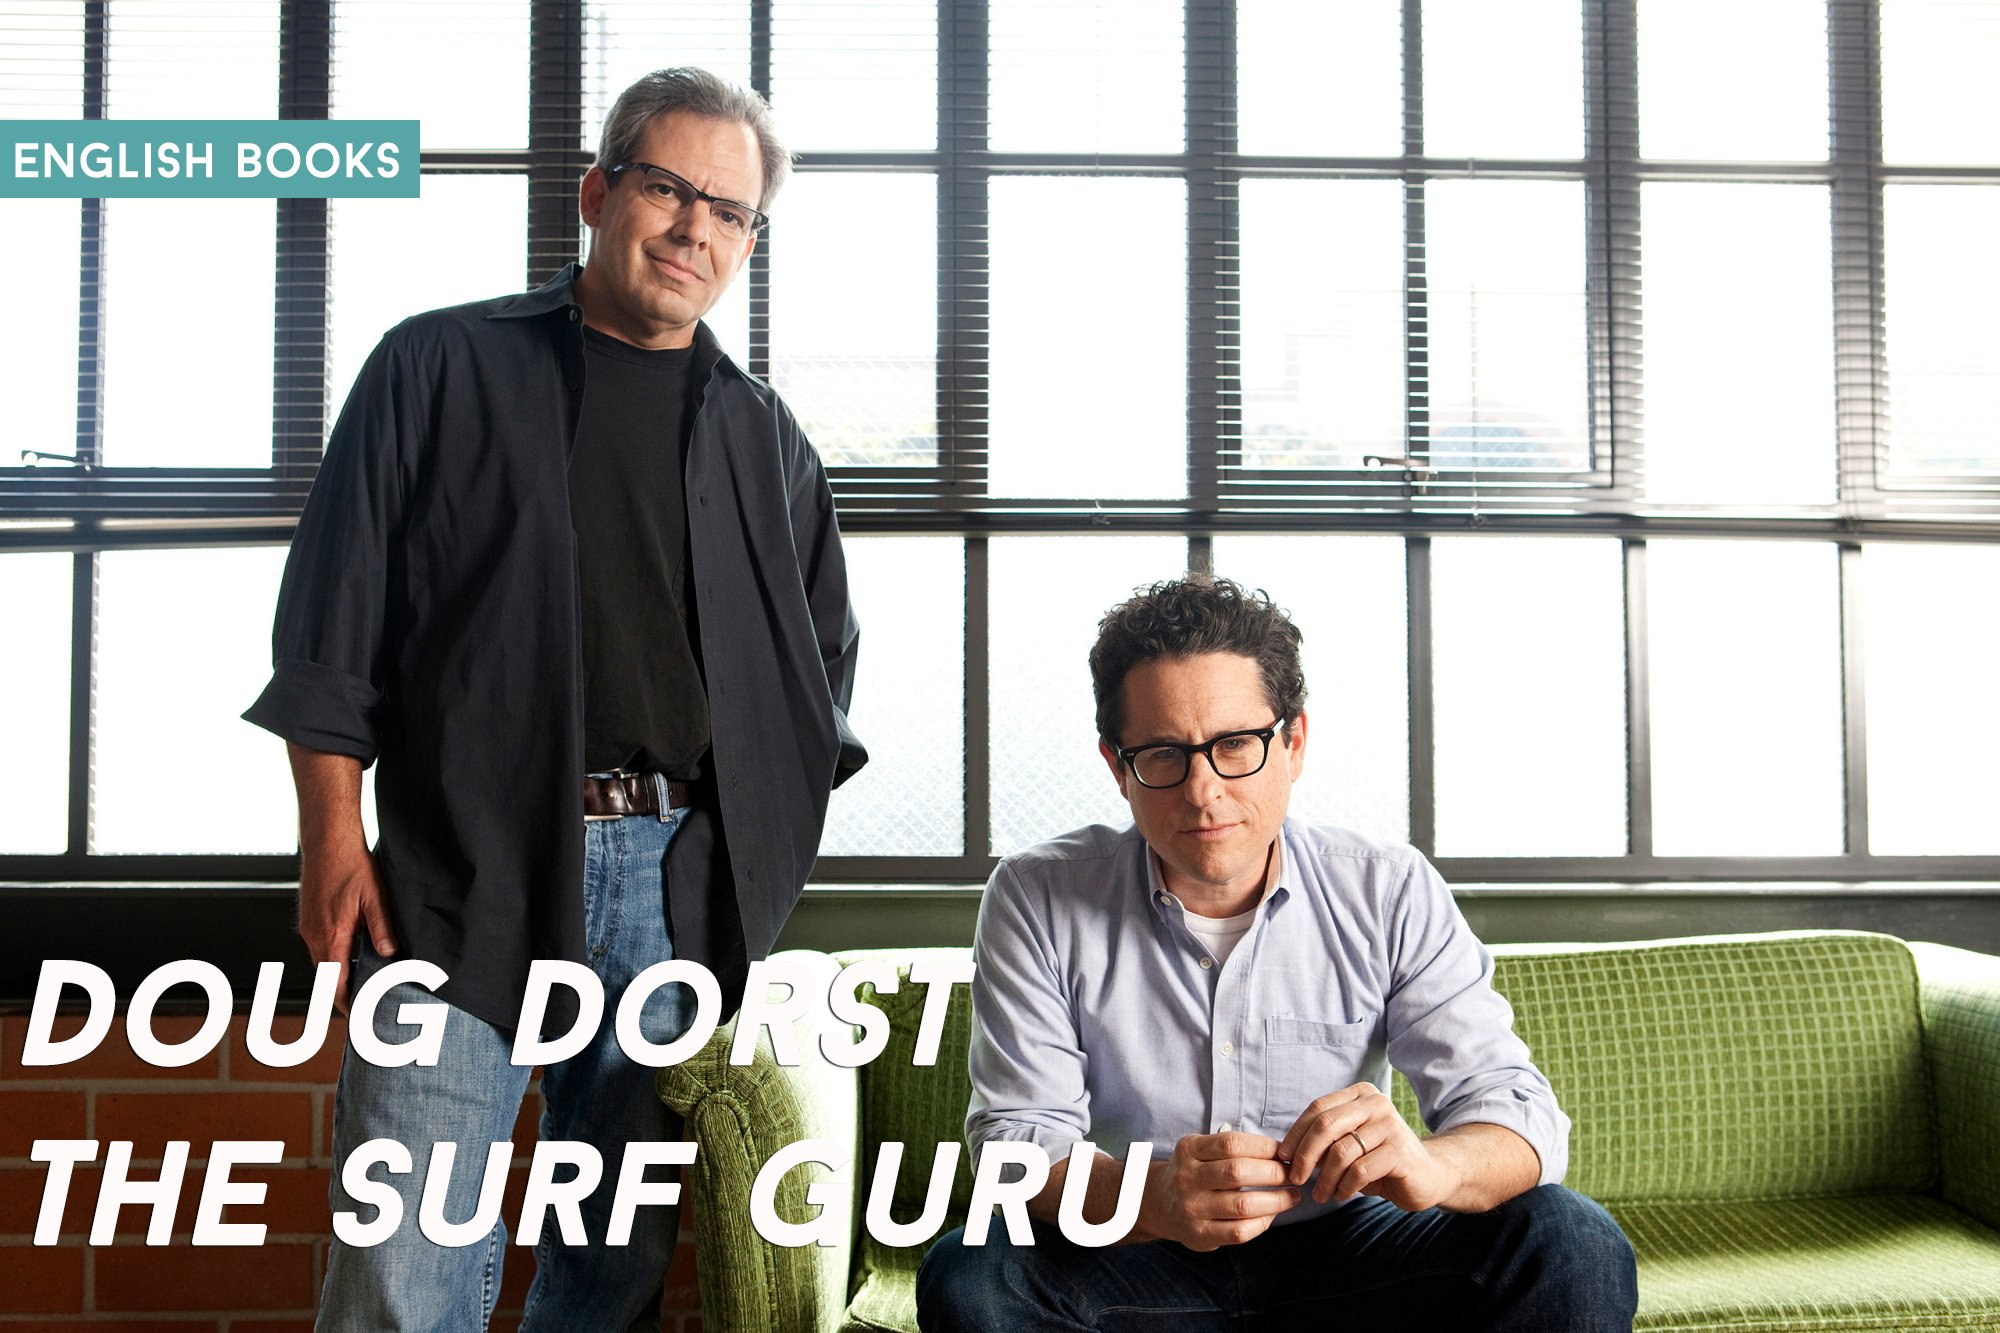 Doug Dorst — The Surf Guru